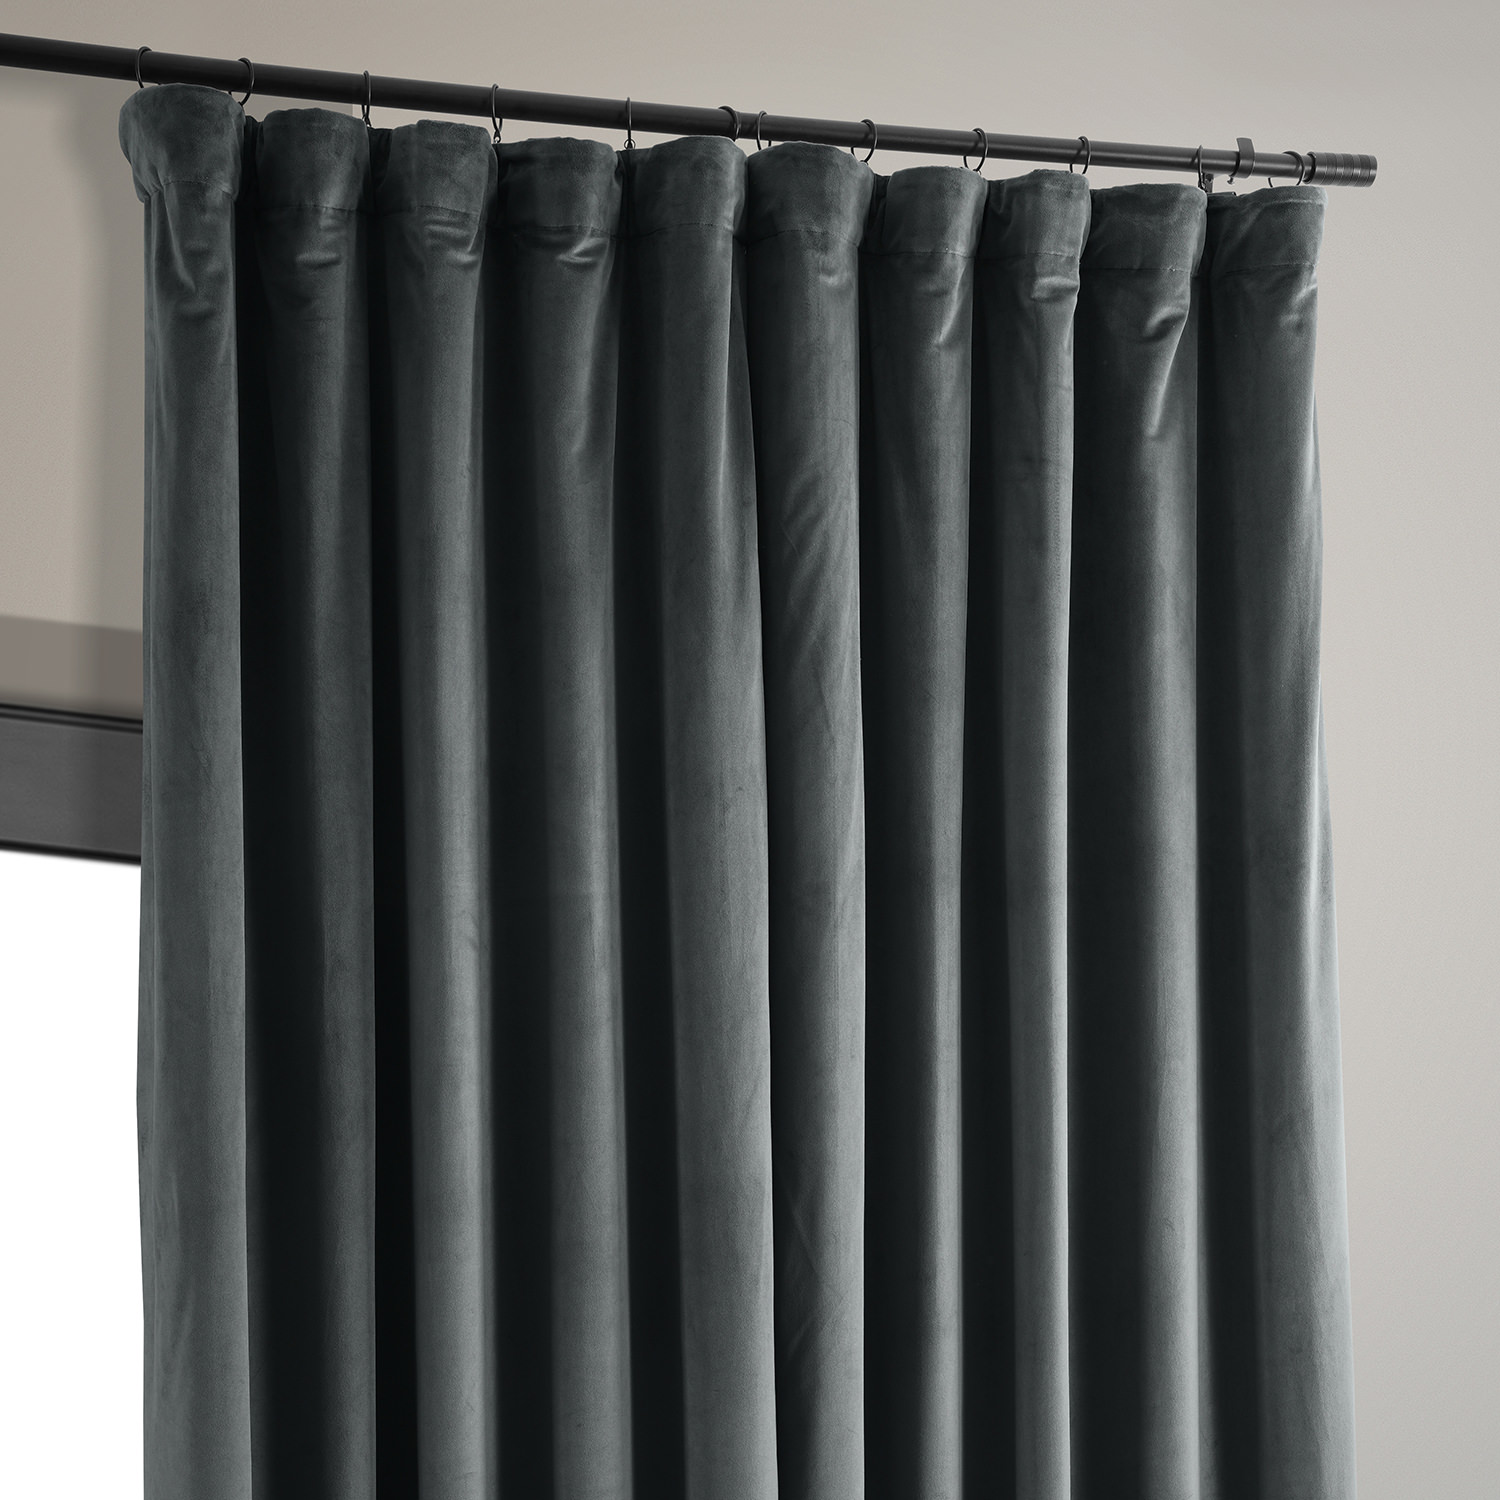 Signature Natural Grey Extra Wide Blackout Velvet Curtain